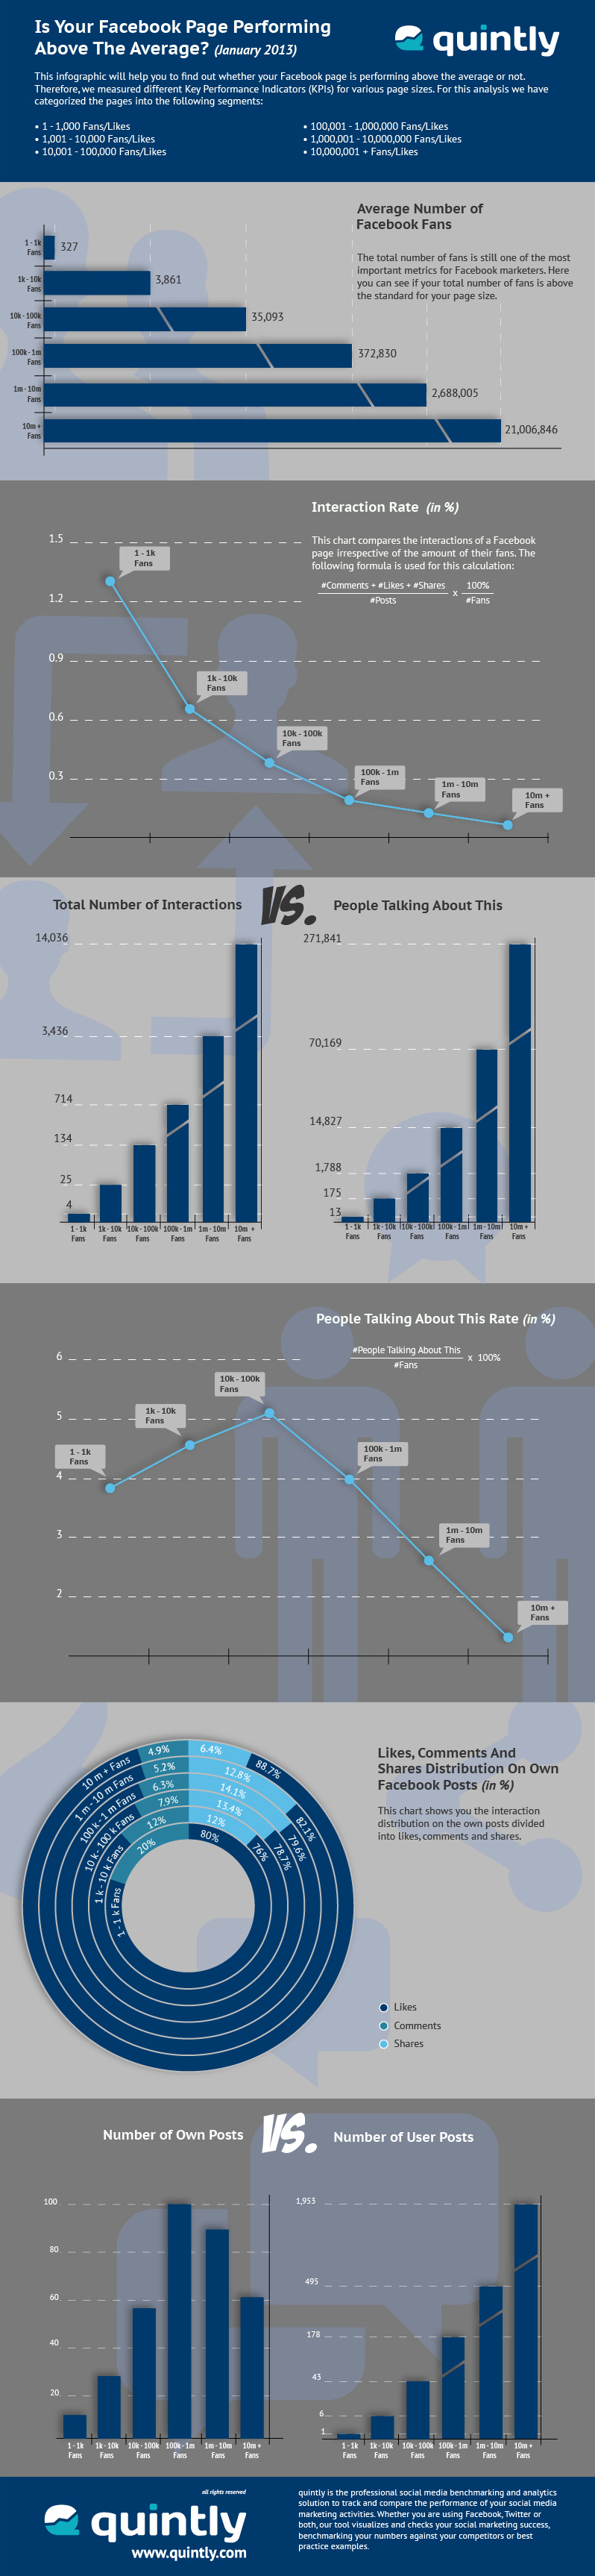 Infografik Facebook Seiten Performance (Quelle: quintly.com)